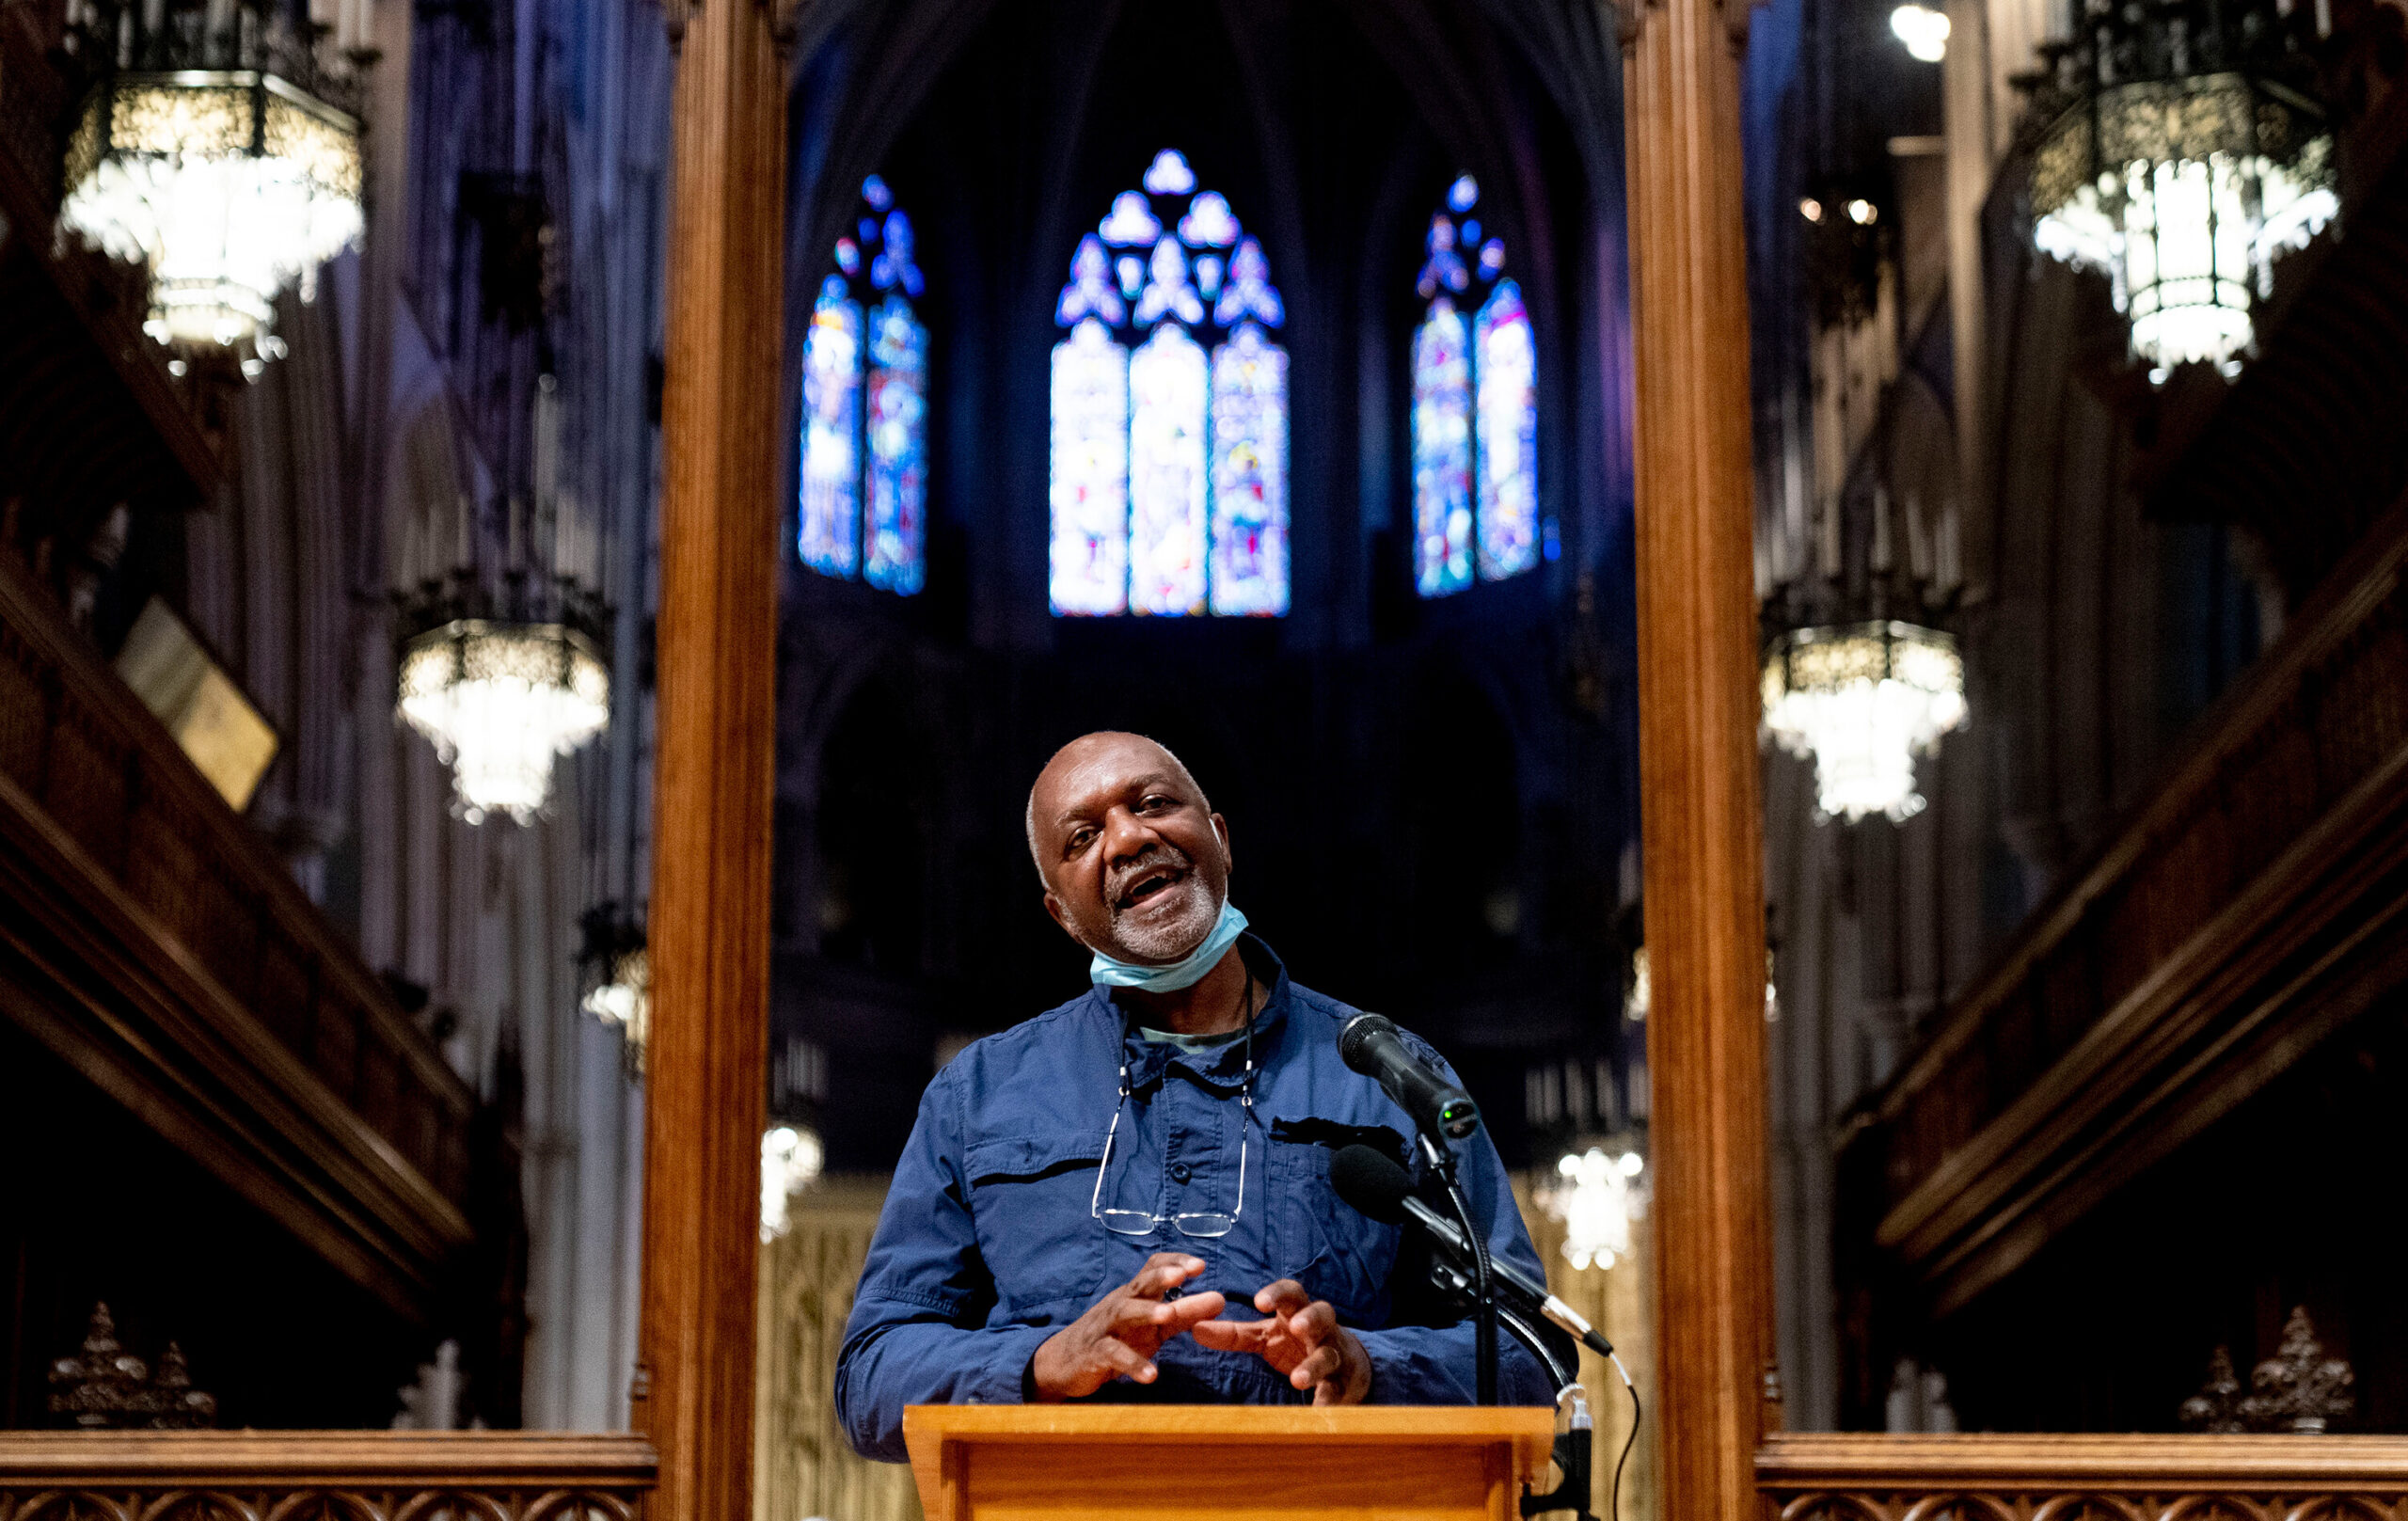 <i>Andrew Harnik/AP</i><br/>The Washington National Cathedral announces that its commissioned renowned artist Kerry James Marshall to create